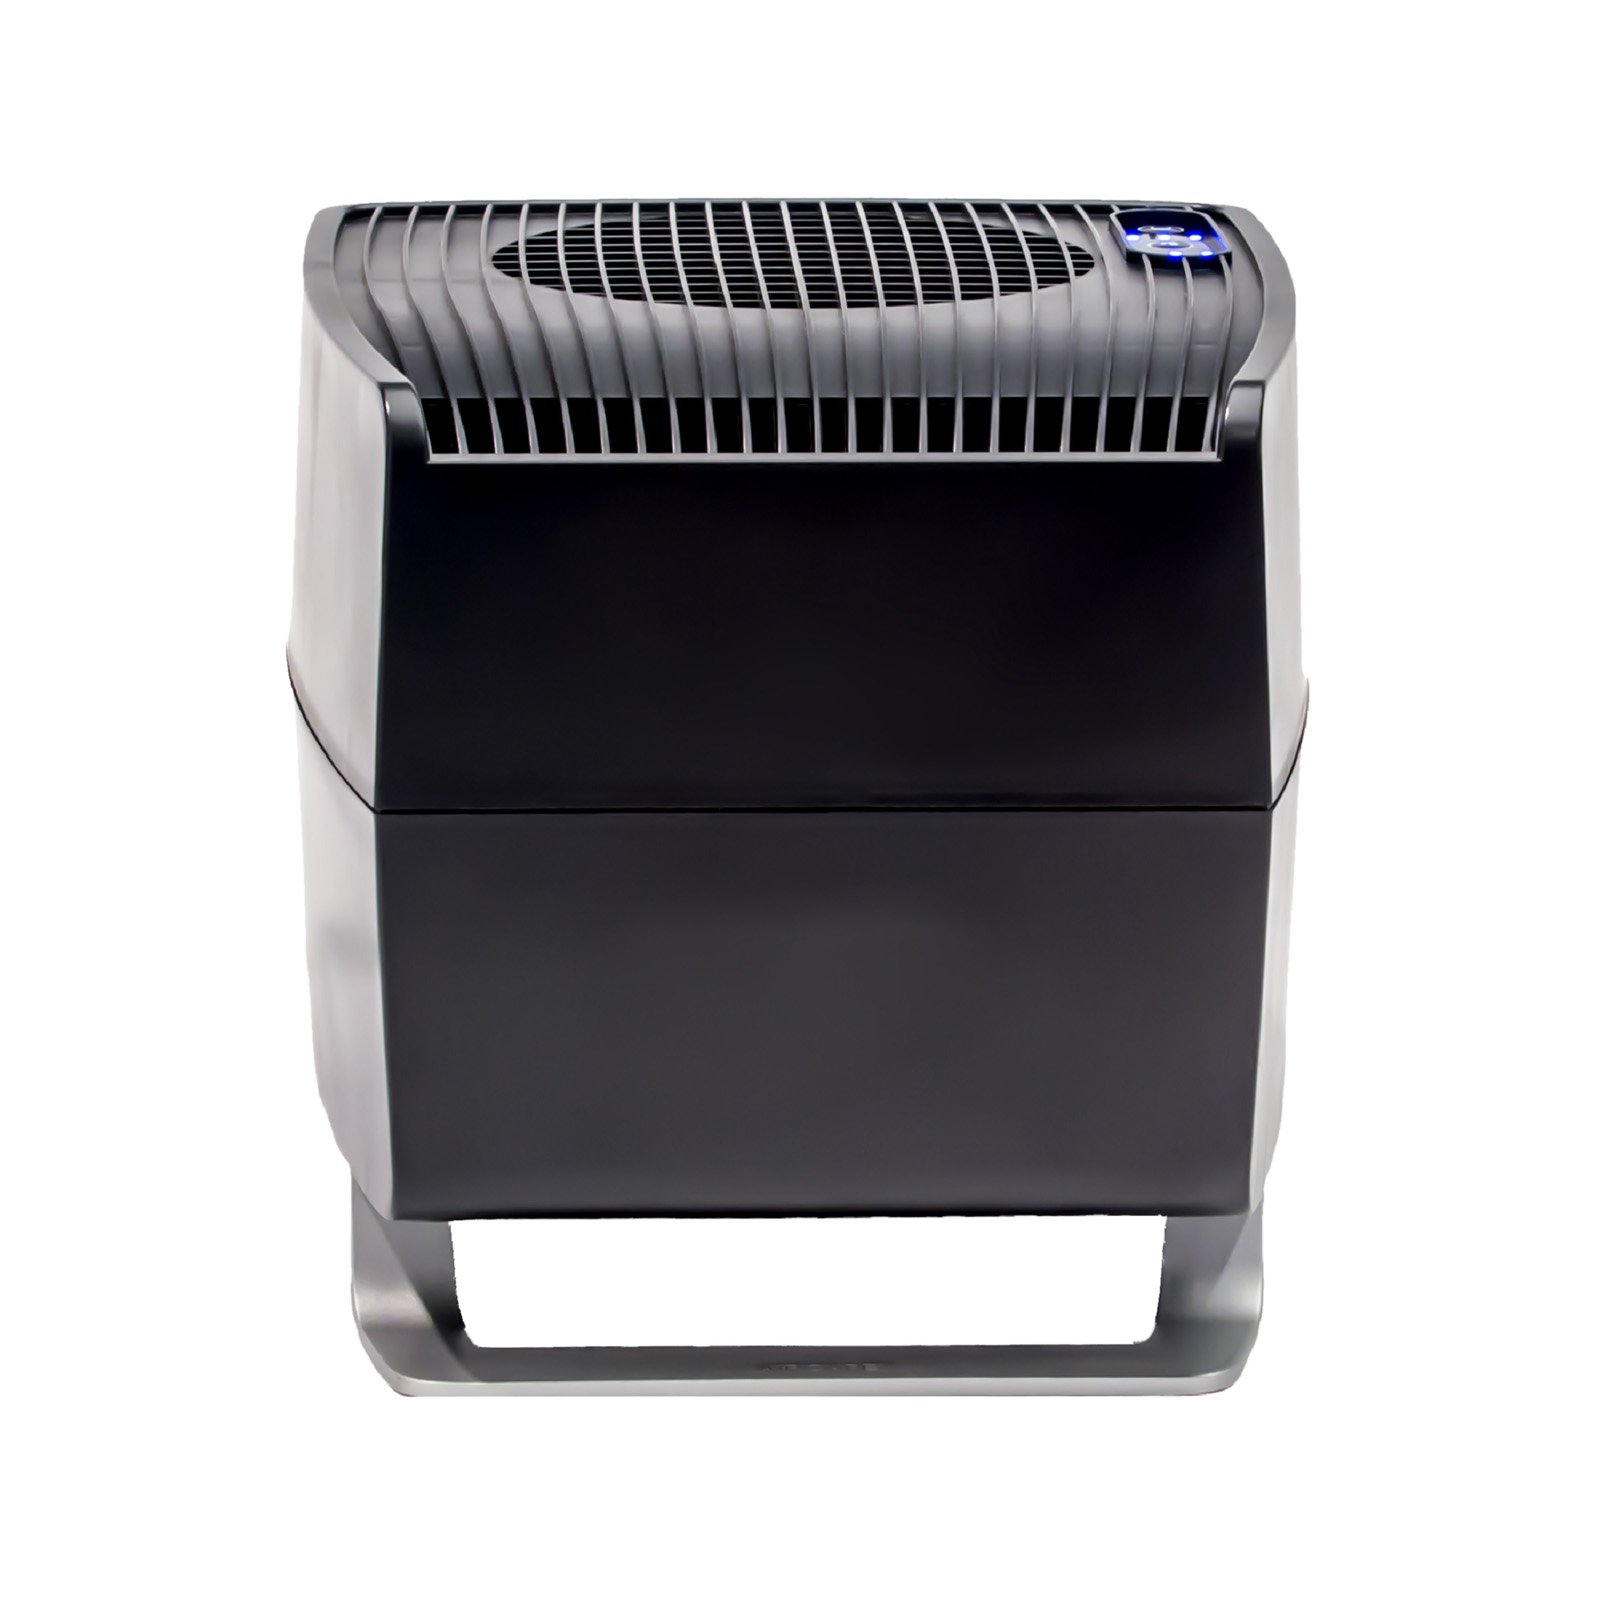 AIRCARE CM330DBLK Companion Tabletop Evaporative Humidifiers with Digital Controls for 1000 sq. ft. Black